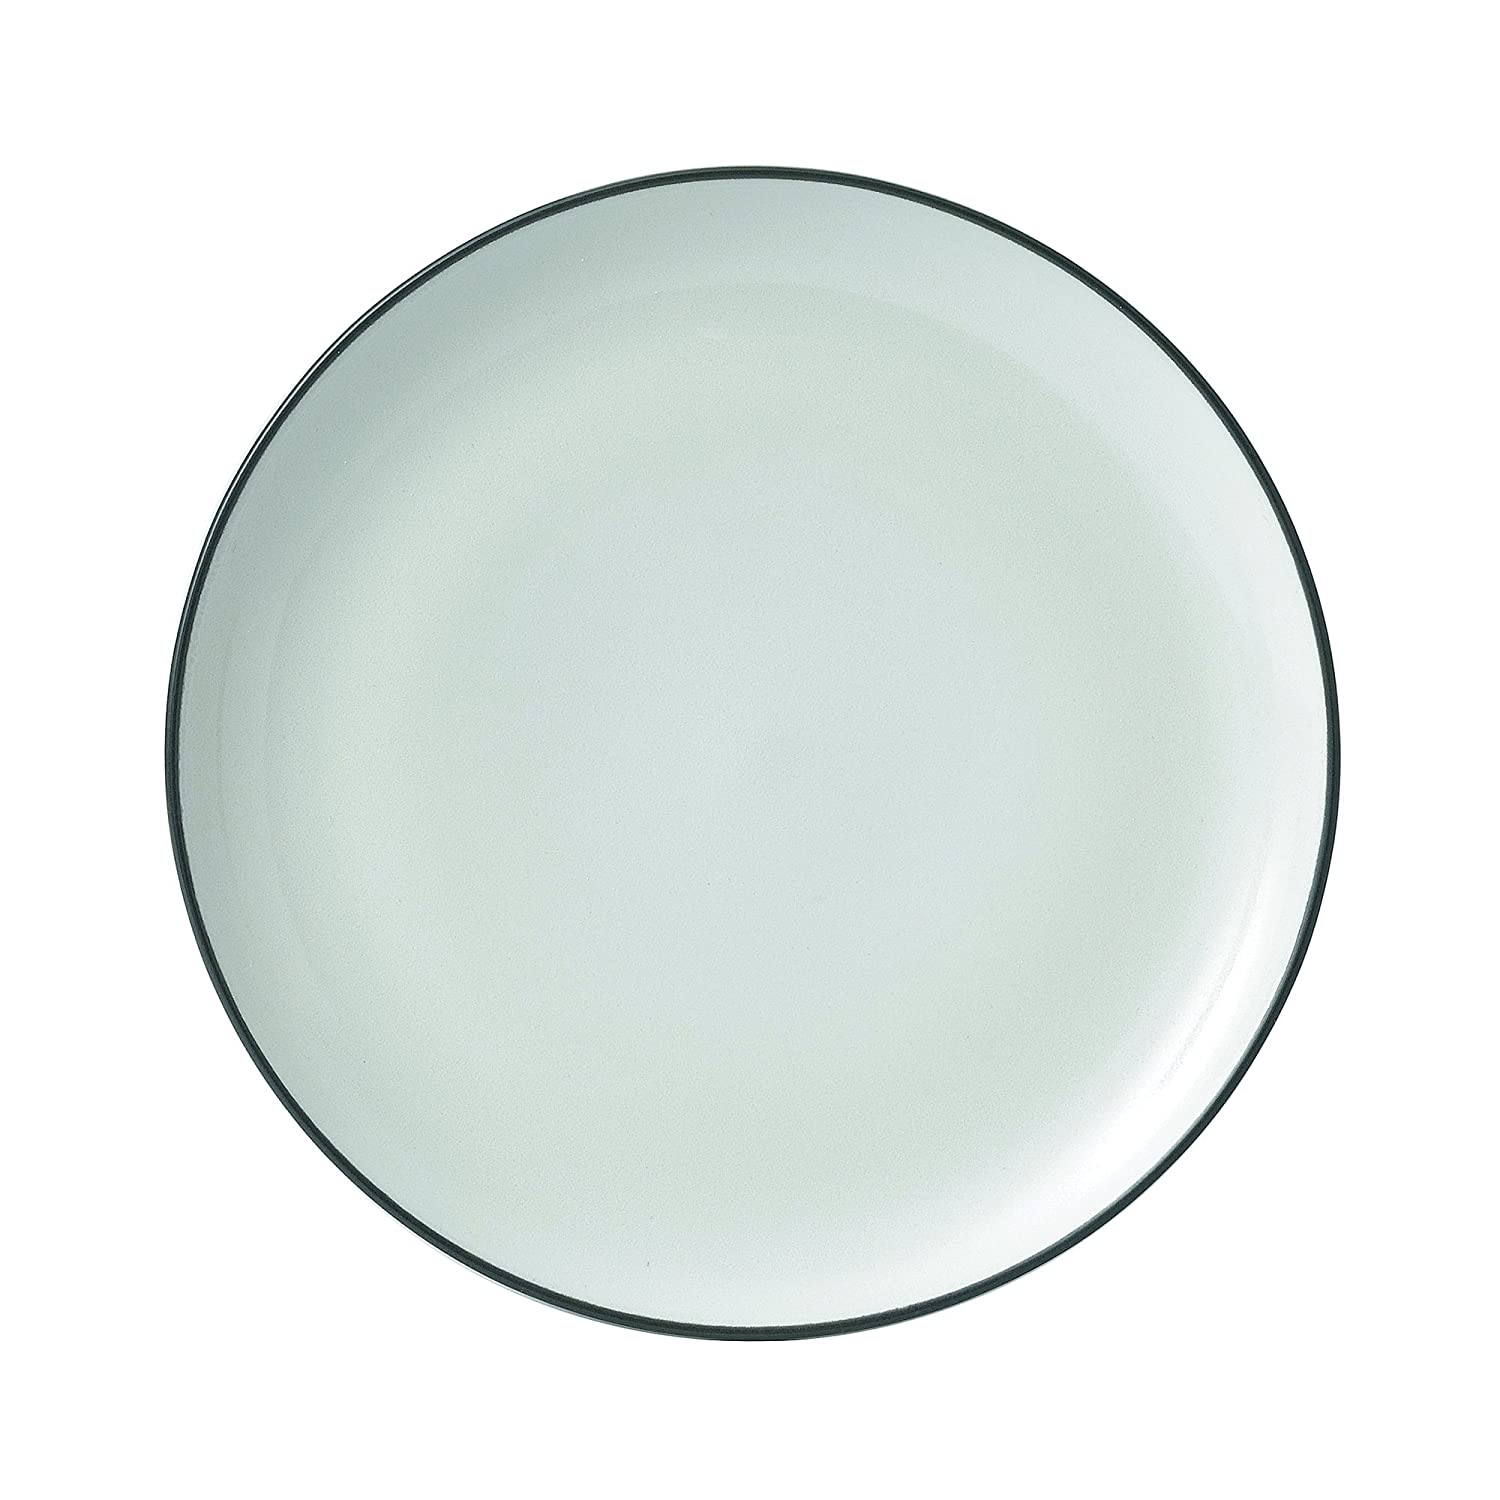 Royal Doulton Bread Street Salad Plate, 8, White 8 GRBRST26705